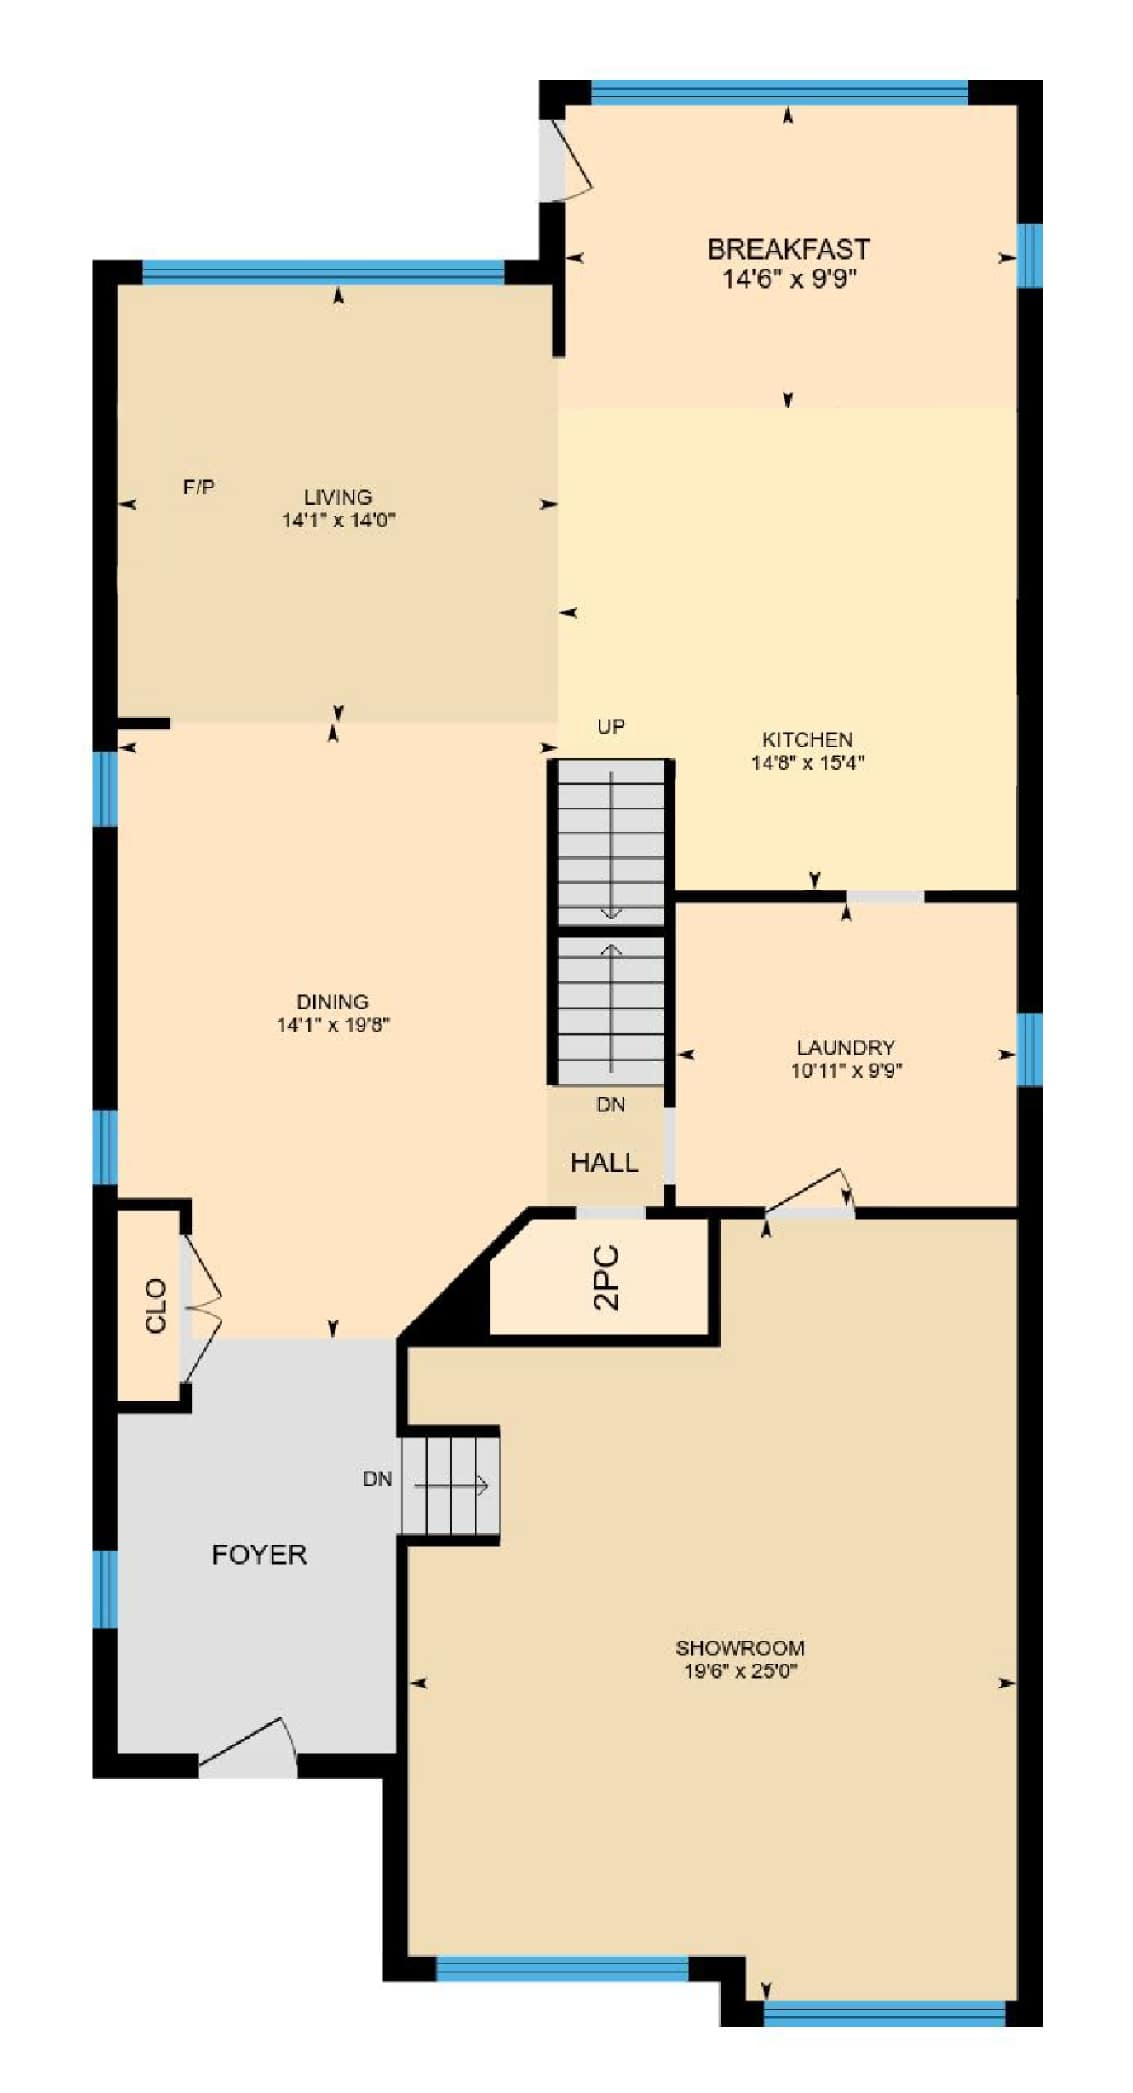 Standard iGuide - Square Feet Photography and Floor Plans